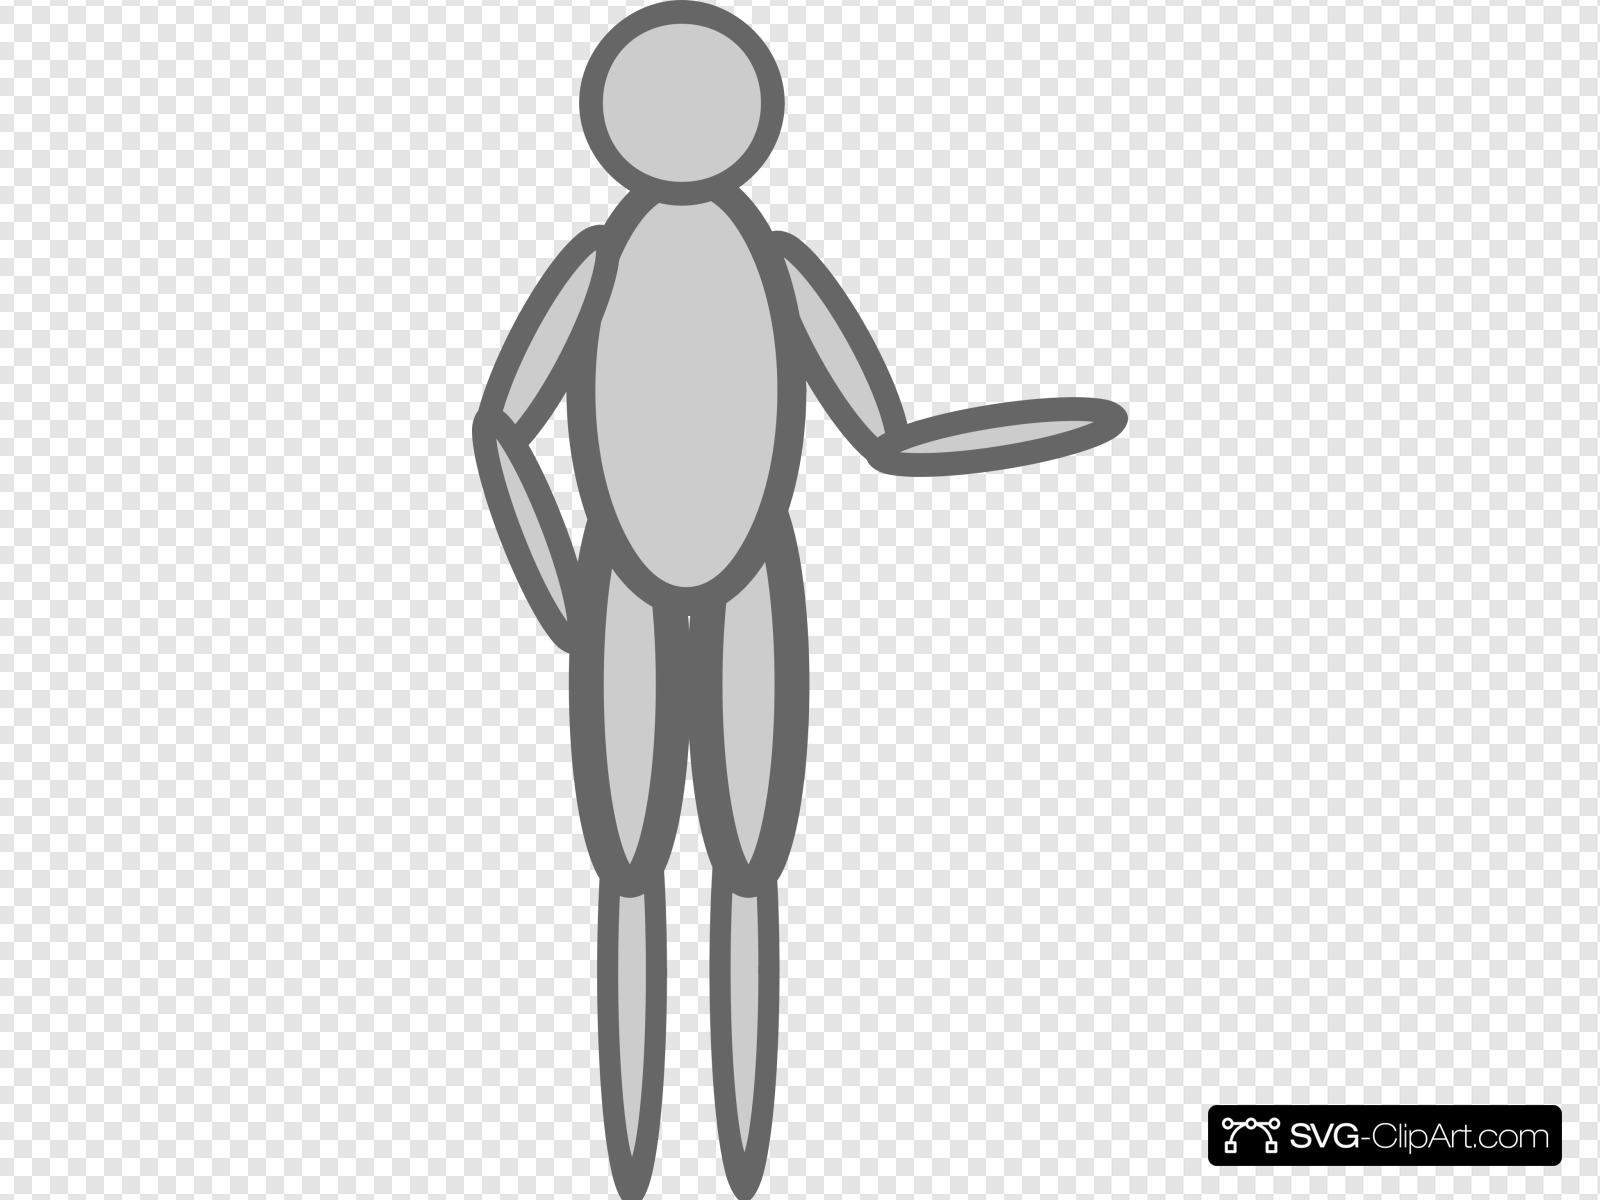 Person With Hands Down Clip art, Icon and SVG.